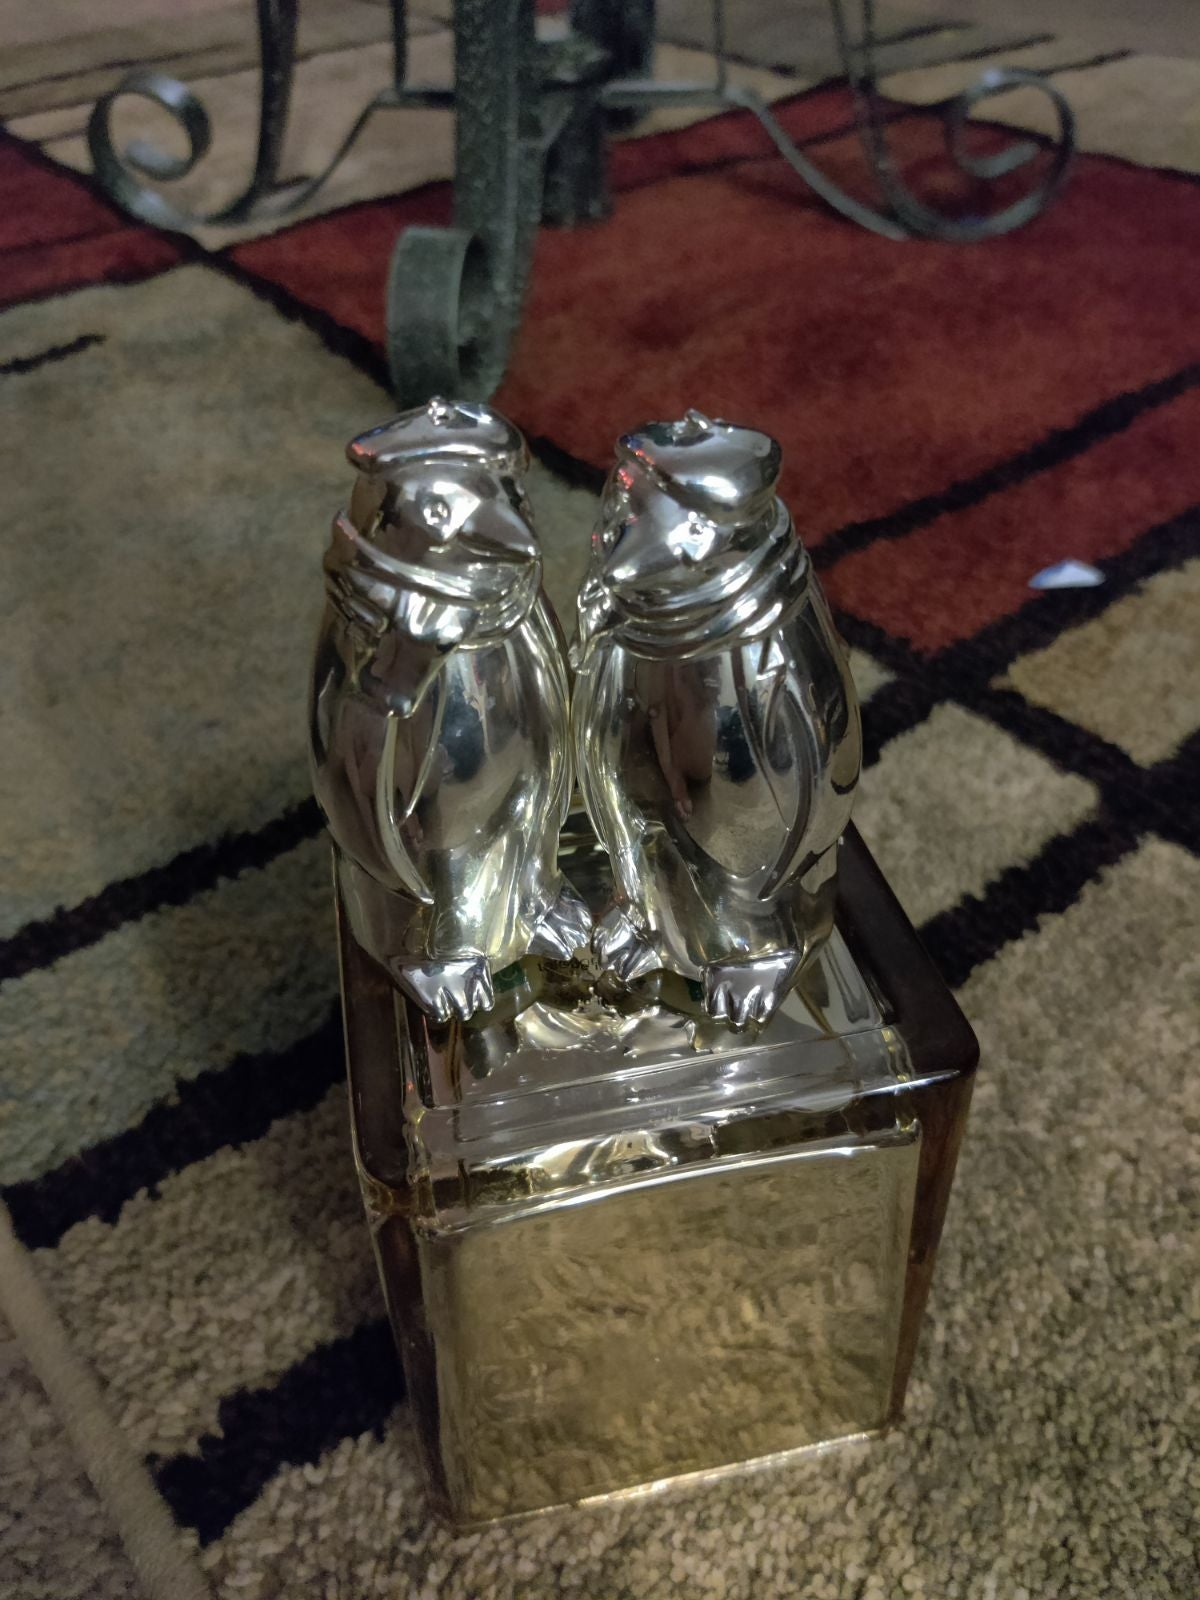 Stainless salt and pepper shaker